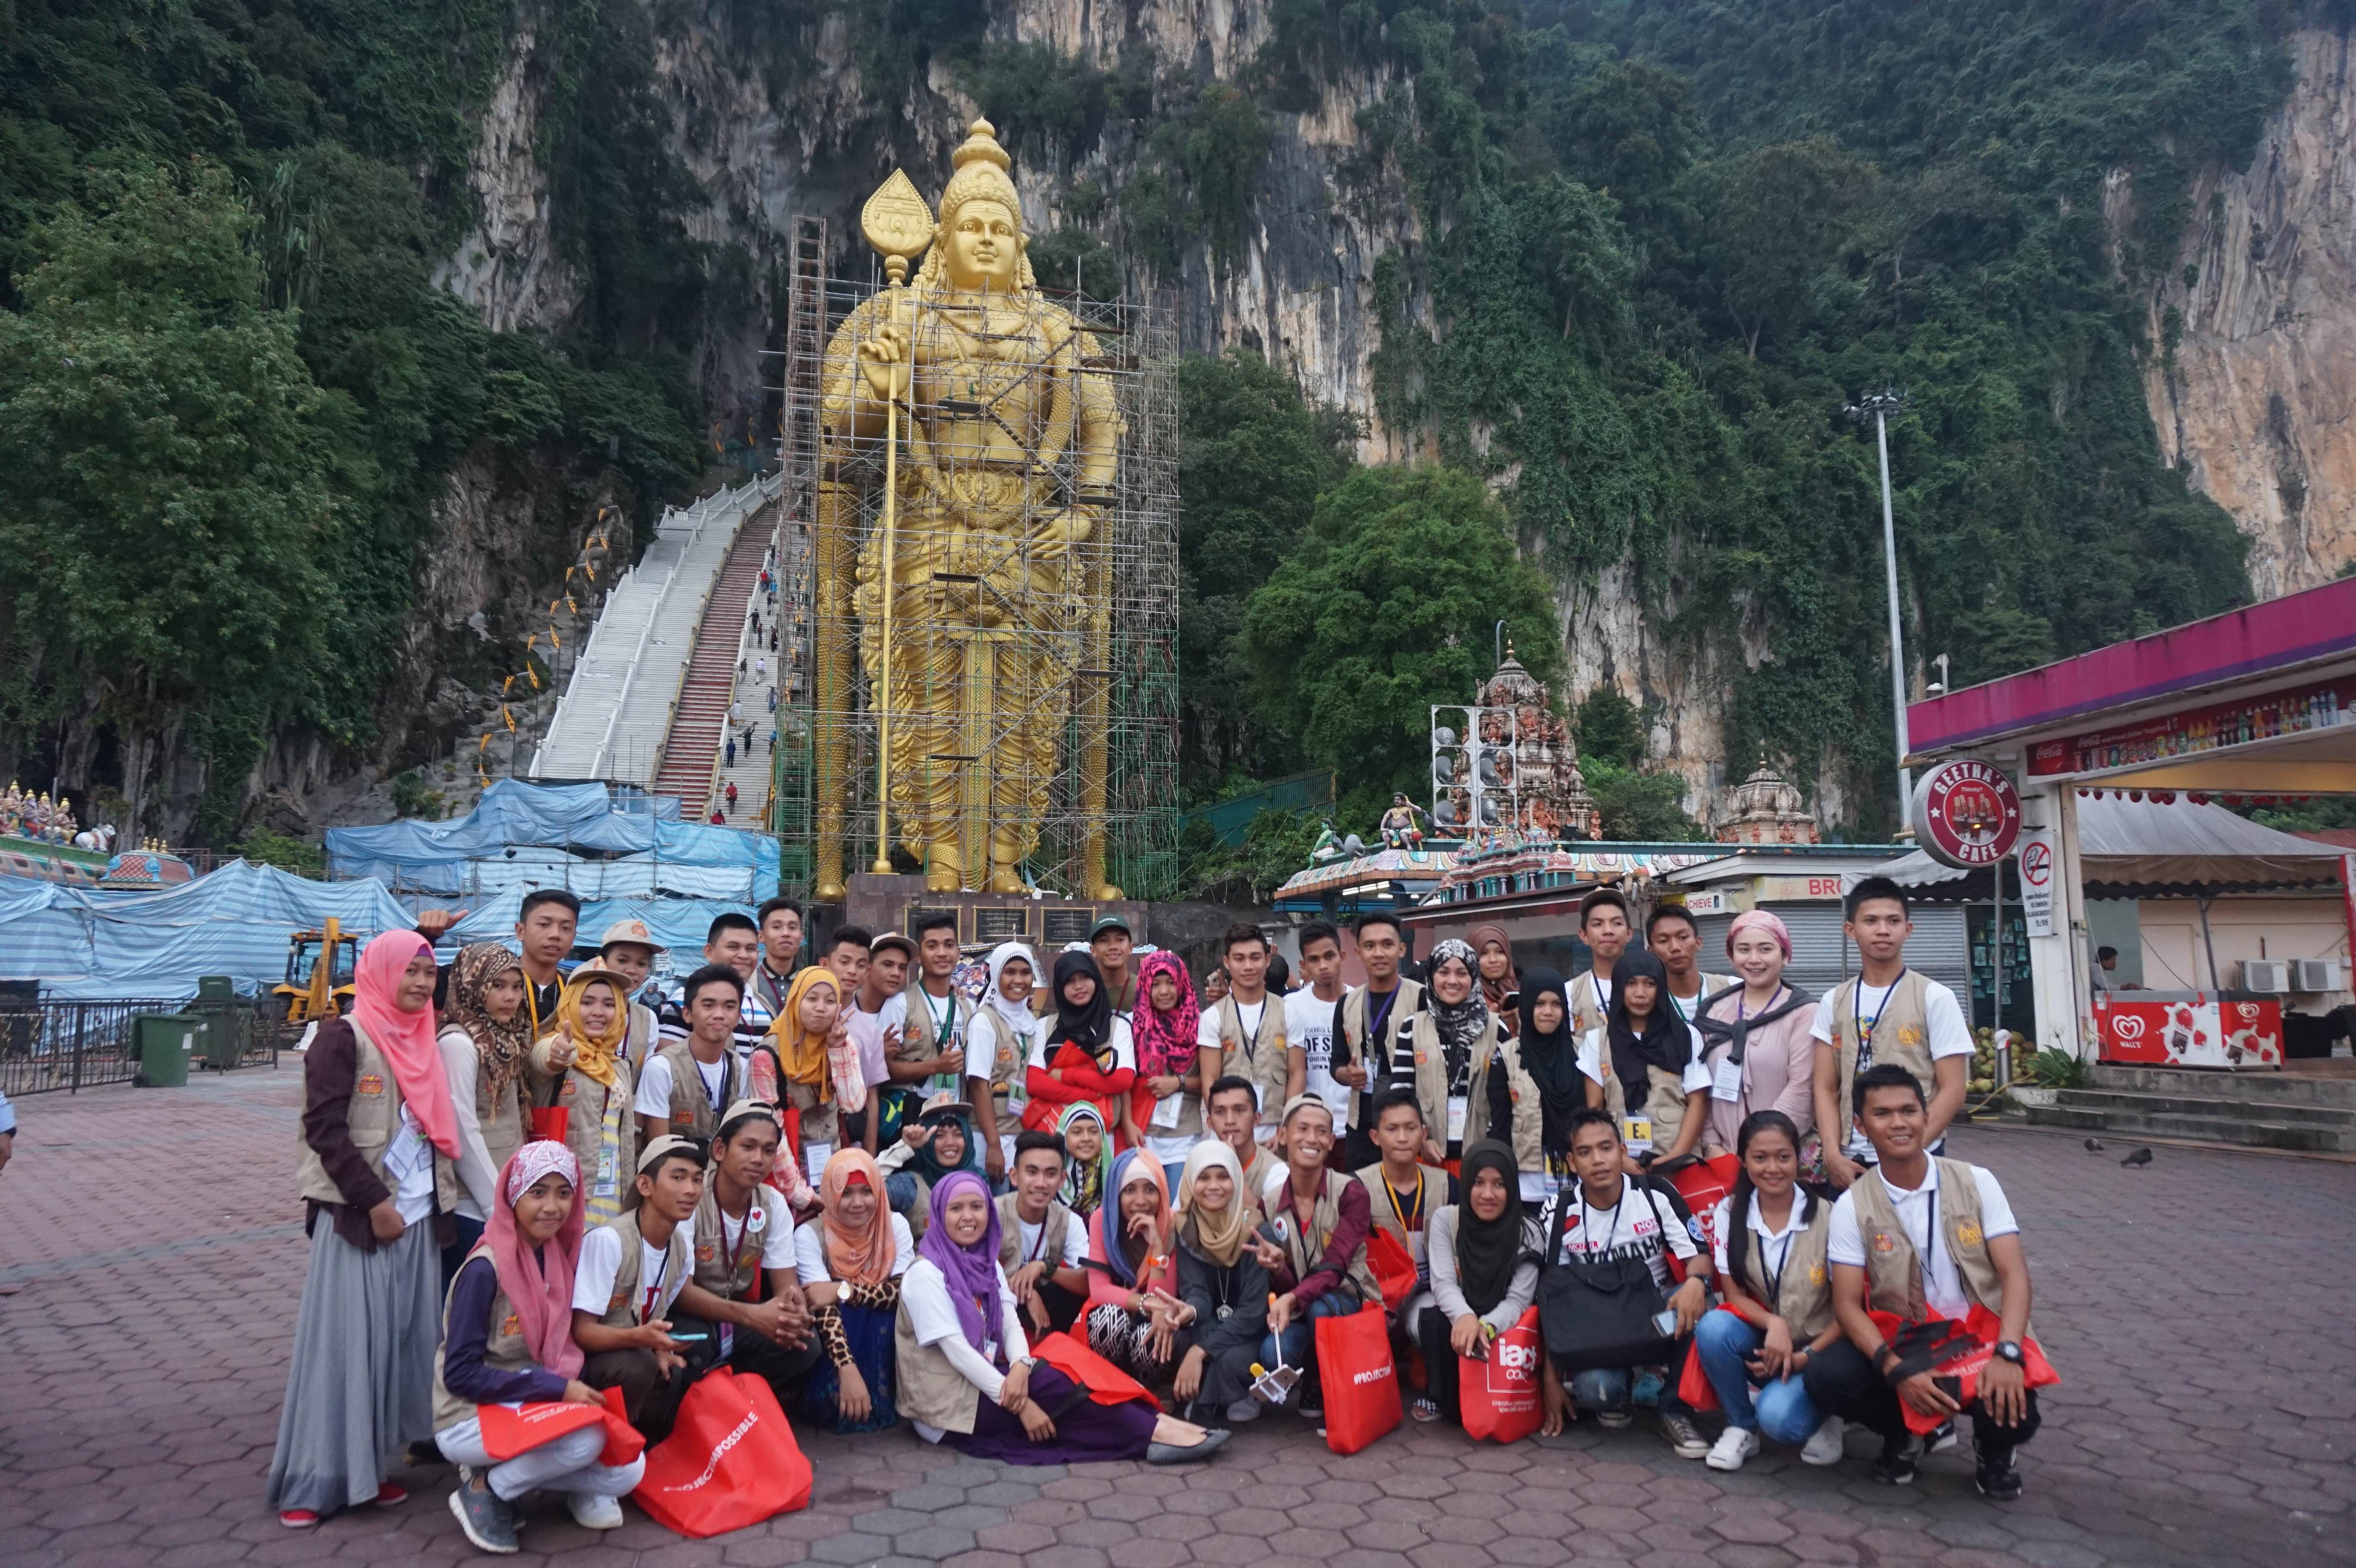 LEARNING FROM EACH OTHER. Members of the delegation pose in front of the Batu Caves after a tour conducted by students of Brickfields Asia College. Photo by Carol Ramoran